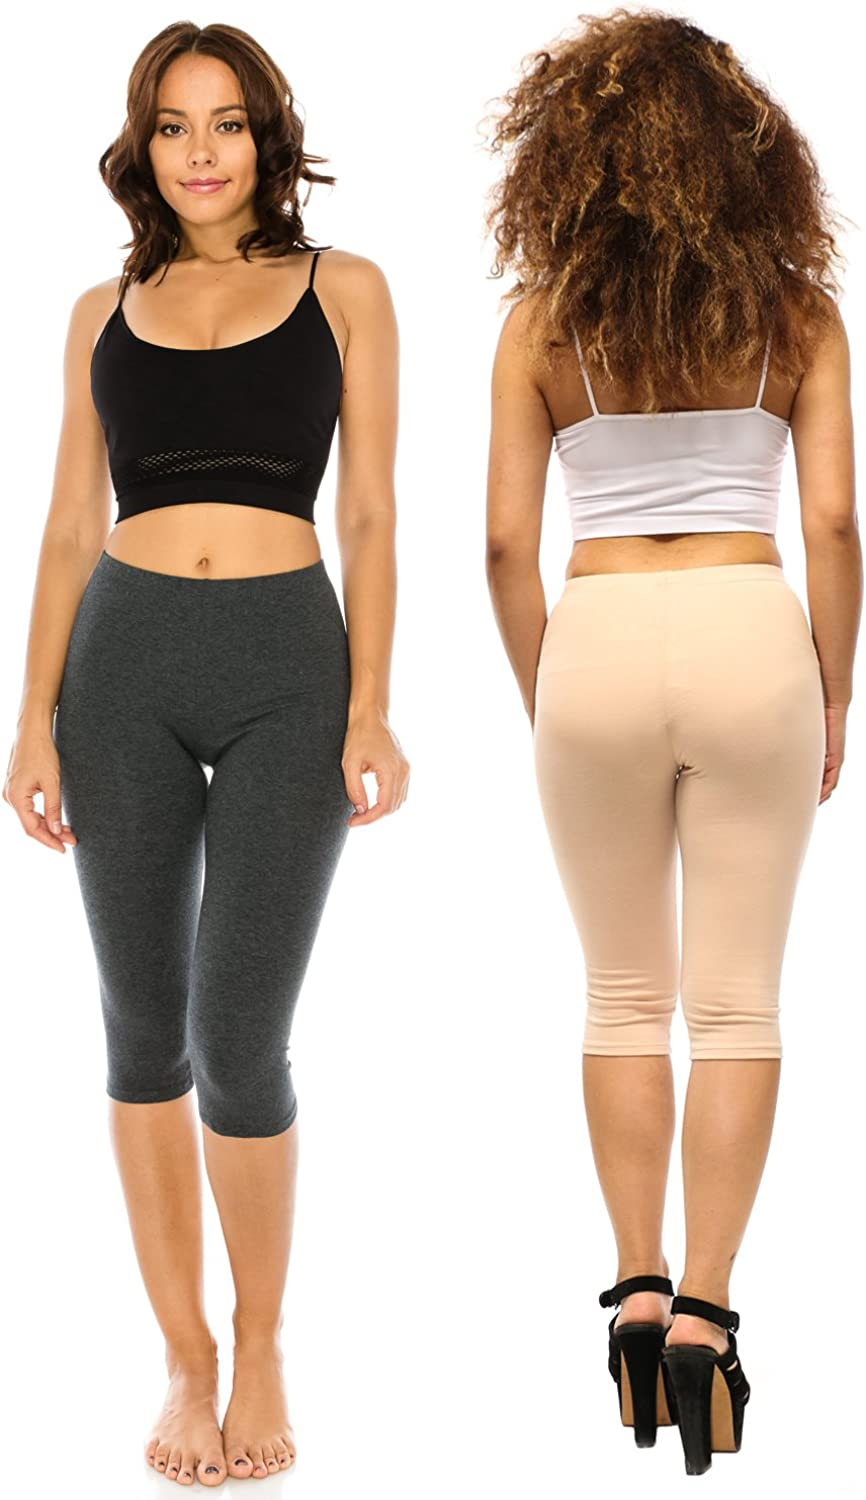 The Classic Womens Stretch Cotton Yoga Sports Leggings Capri Bottoms Leggings Tights S to 3XL Plus